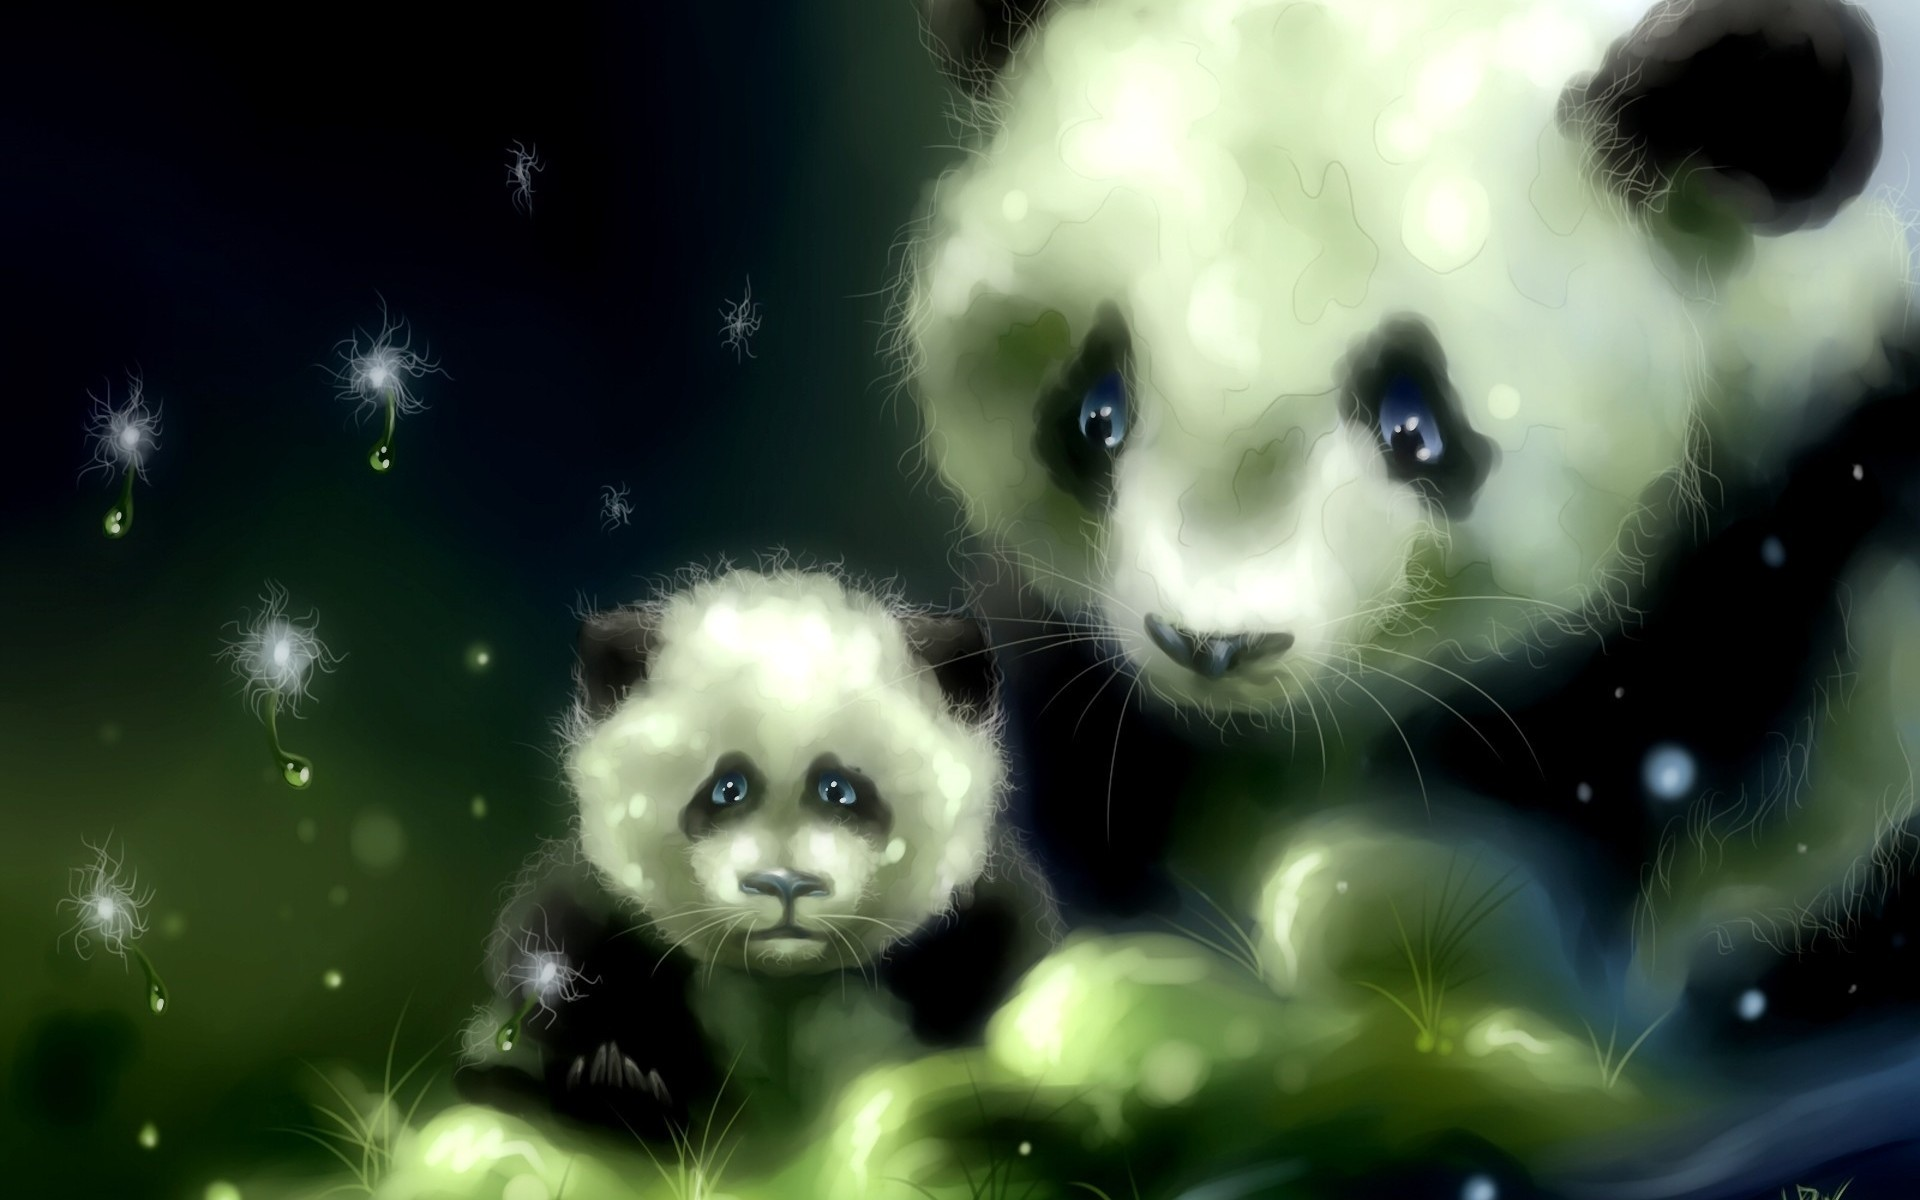 Art panda bears babies cute wallpaper 1920x1200 39807 1920x1200